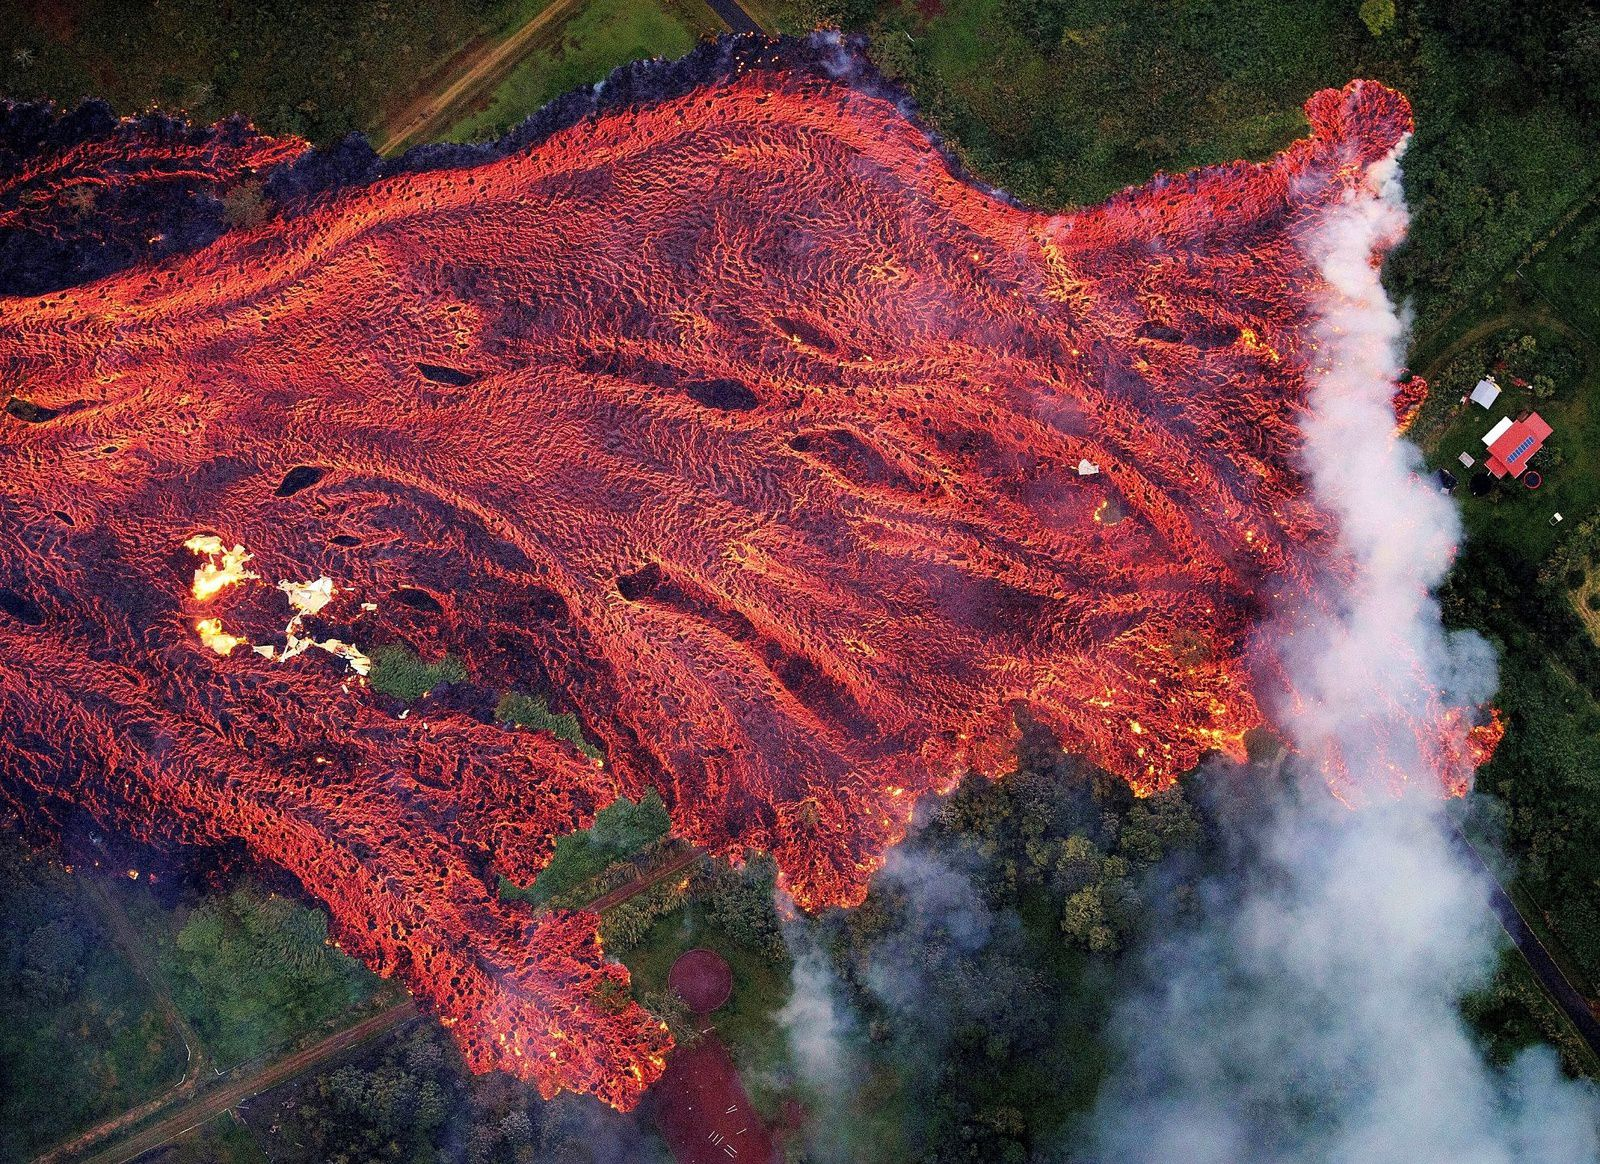 Kilauea East Rift Zone - lava flows May 19, 2018 - Photo Bruce Omori - Paradise Helicopters / EPA-EFE / Shutterstock - in Time Top 100 photos of the year 2018